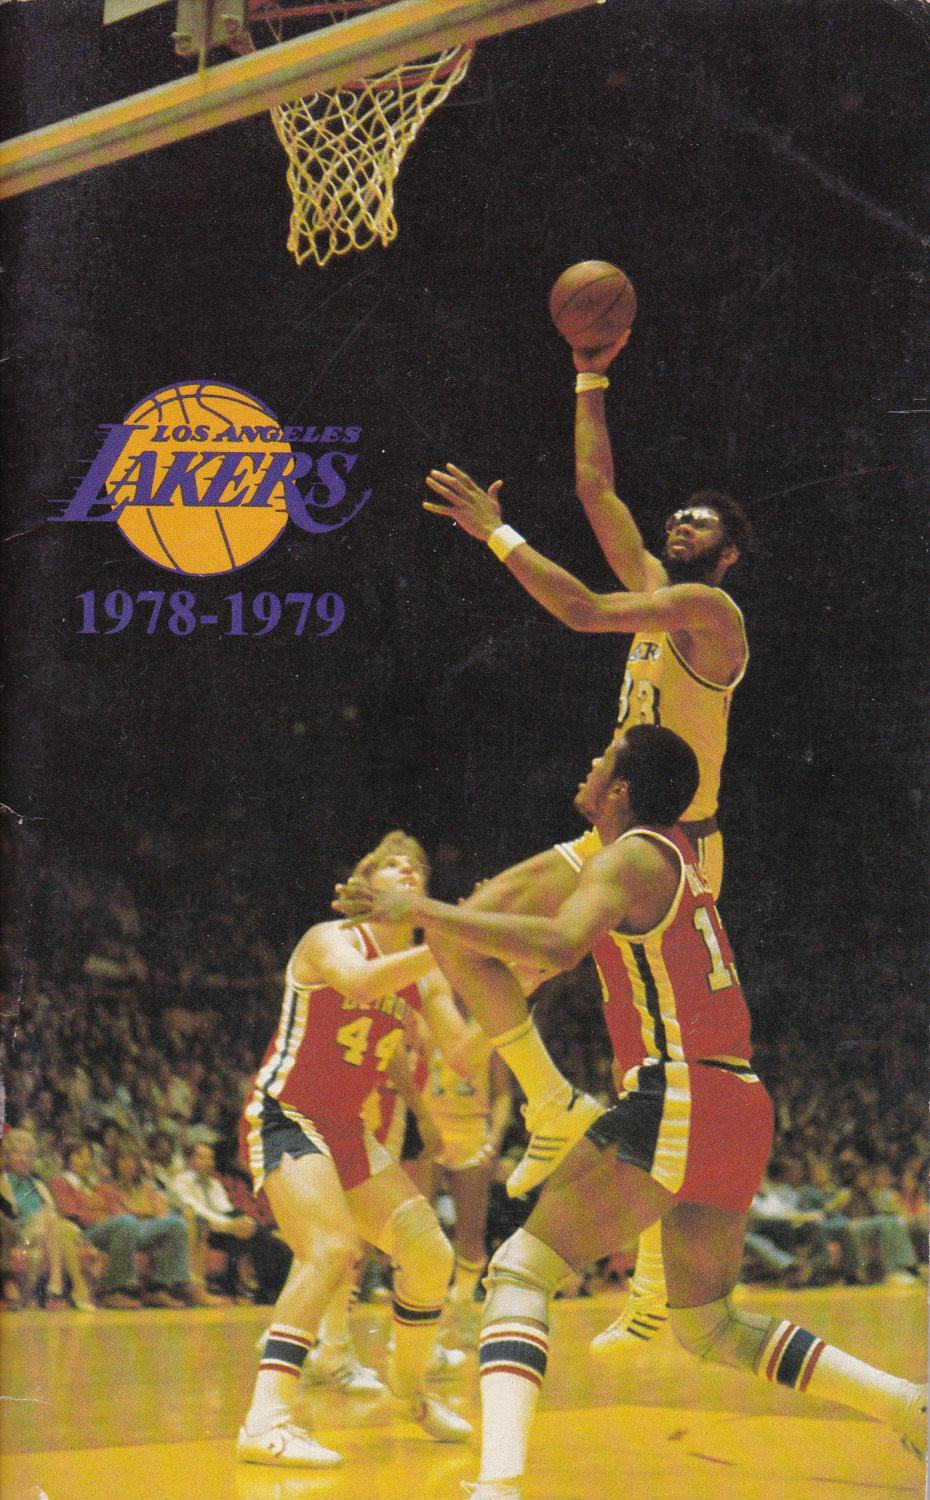 Los Angeles Lakers 1978/79 Media Guide Signed By Jerry